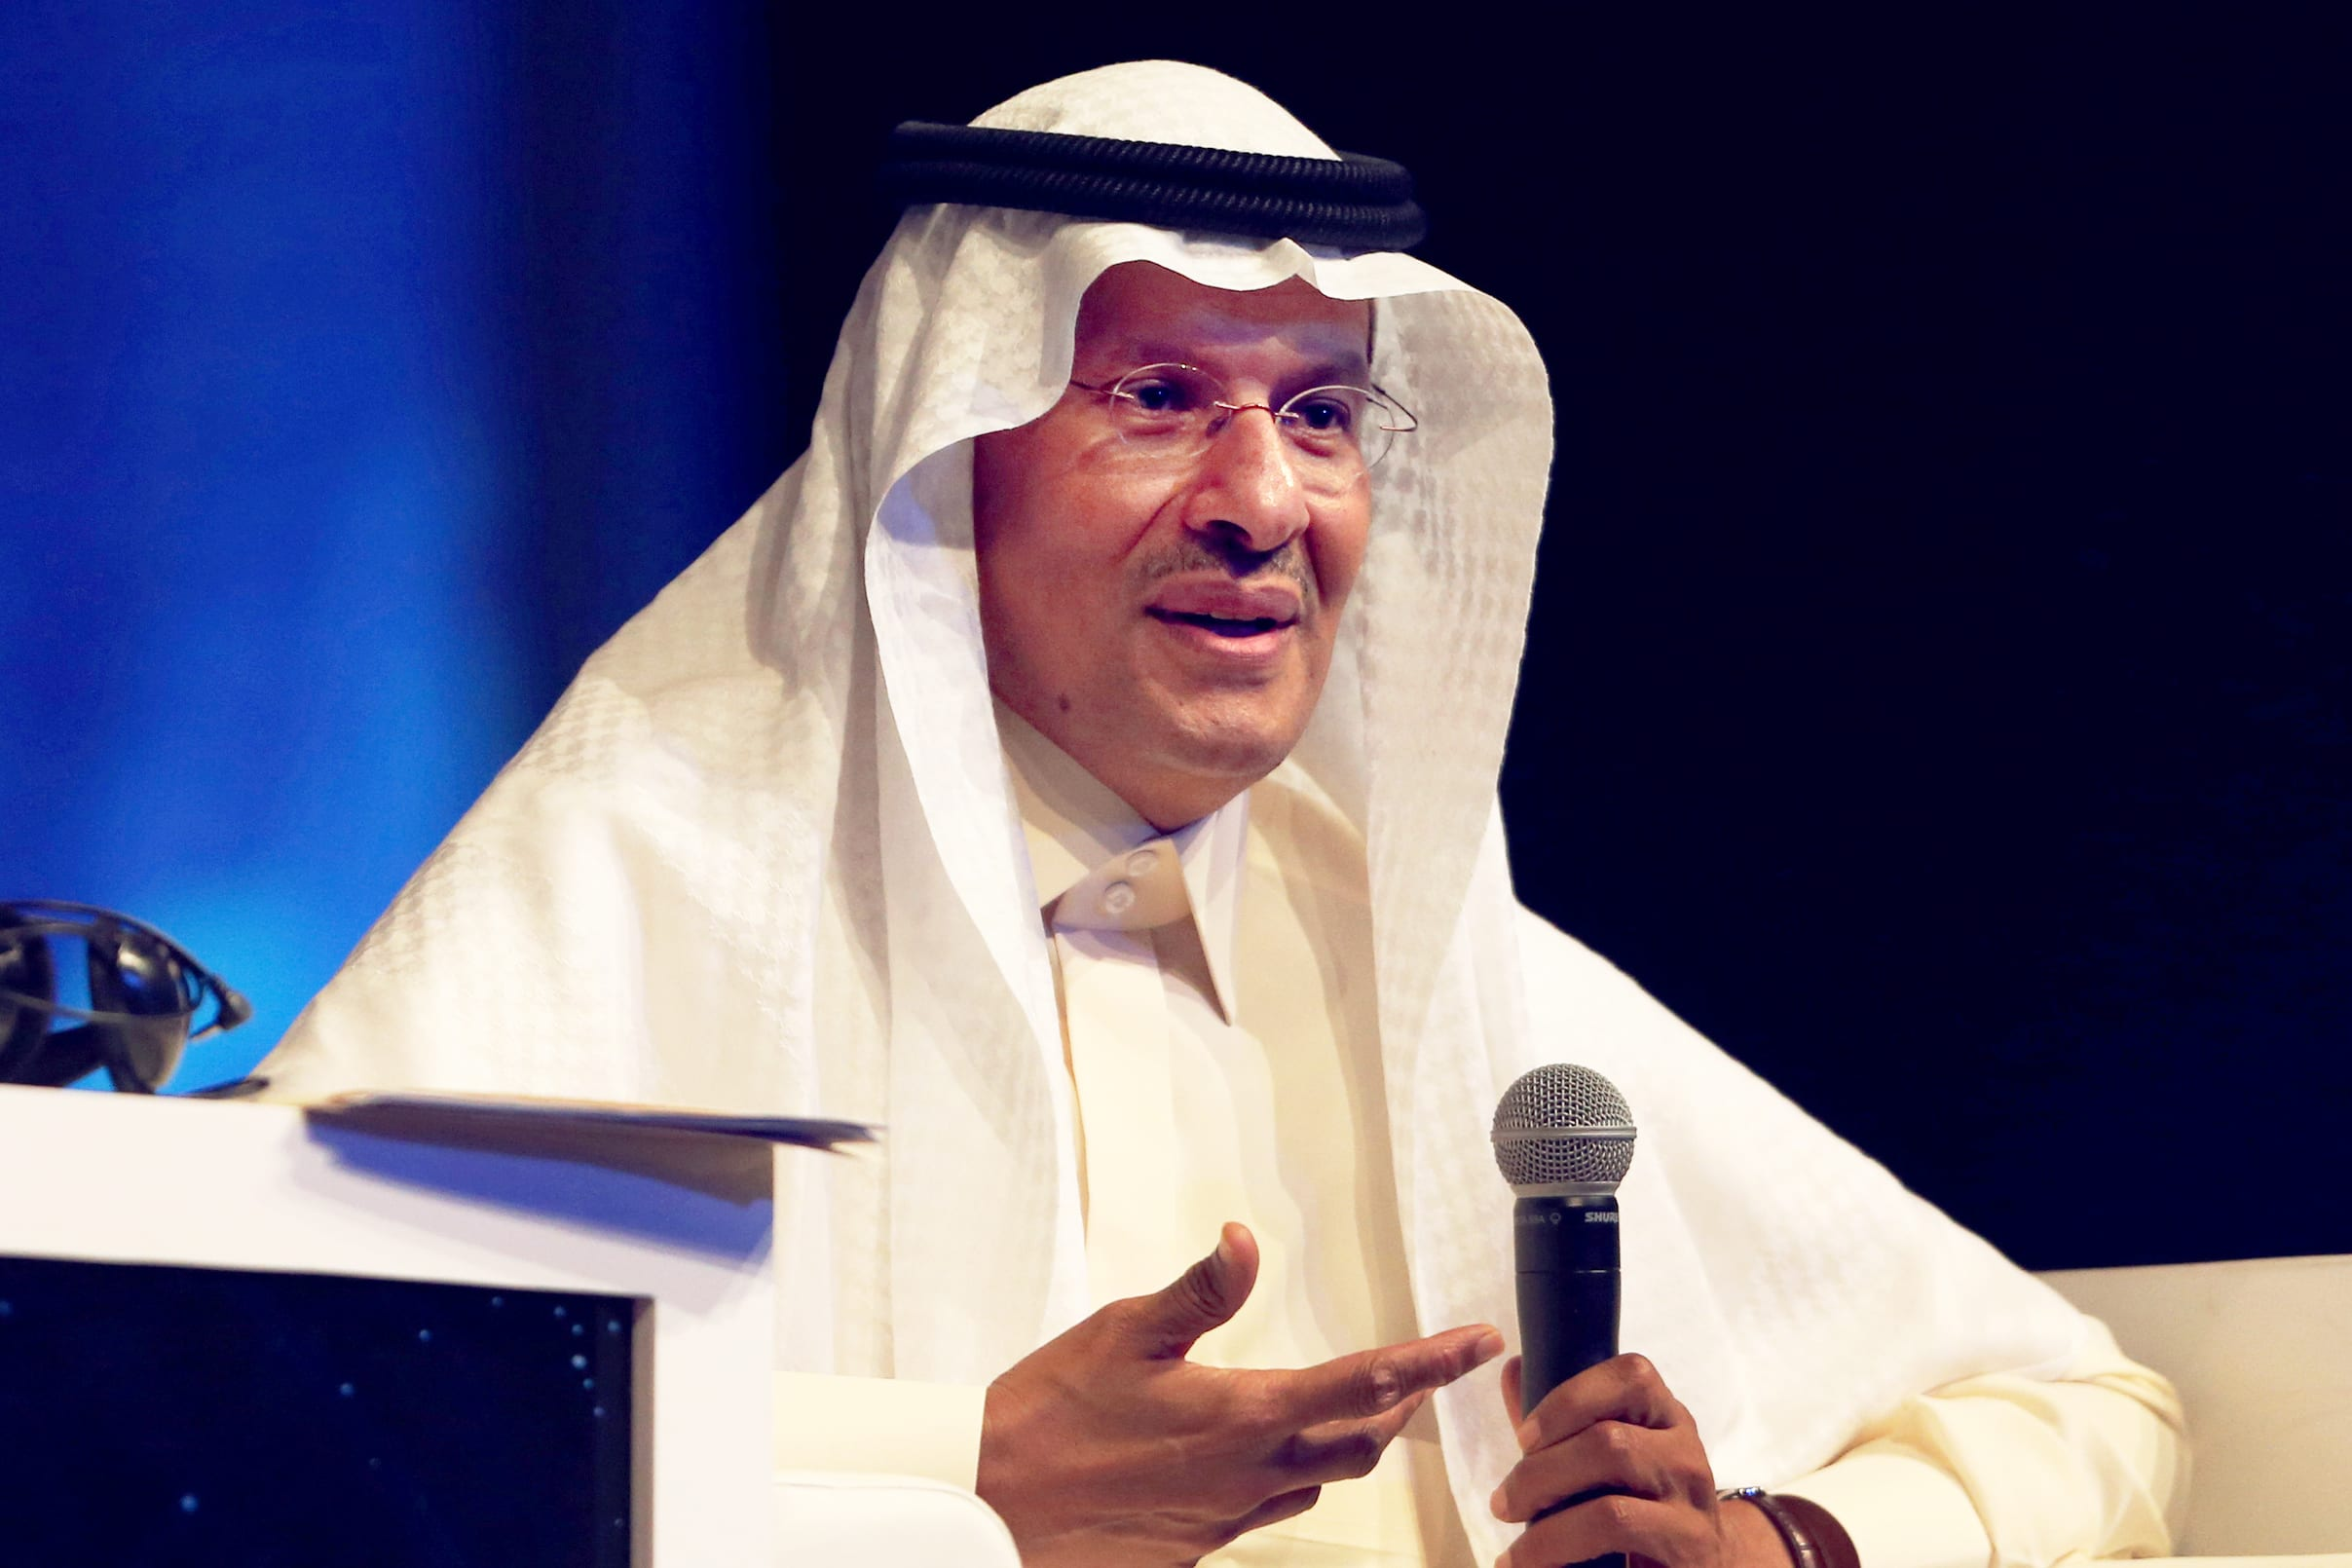 Saudi Arabia's new oil minister more fully behind expedited IPO of Saudi Aramco